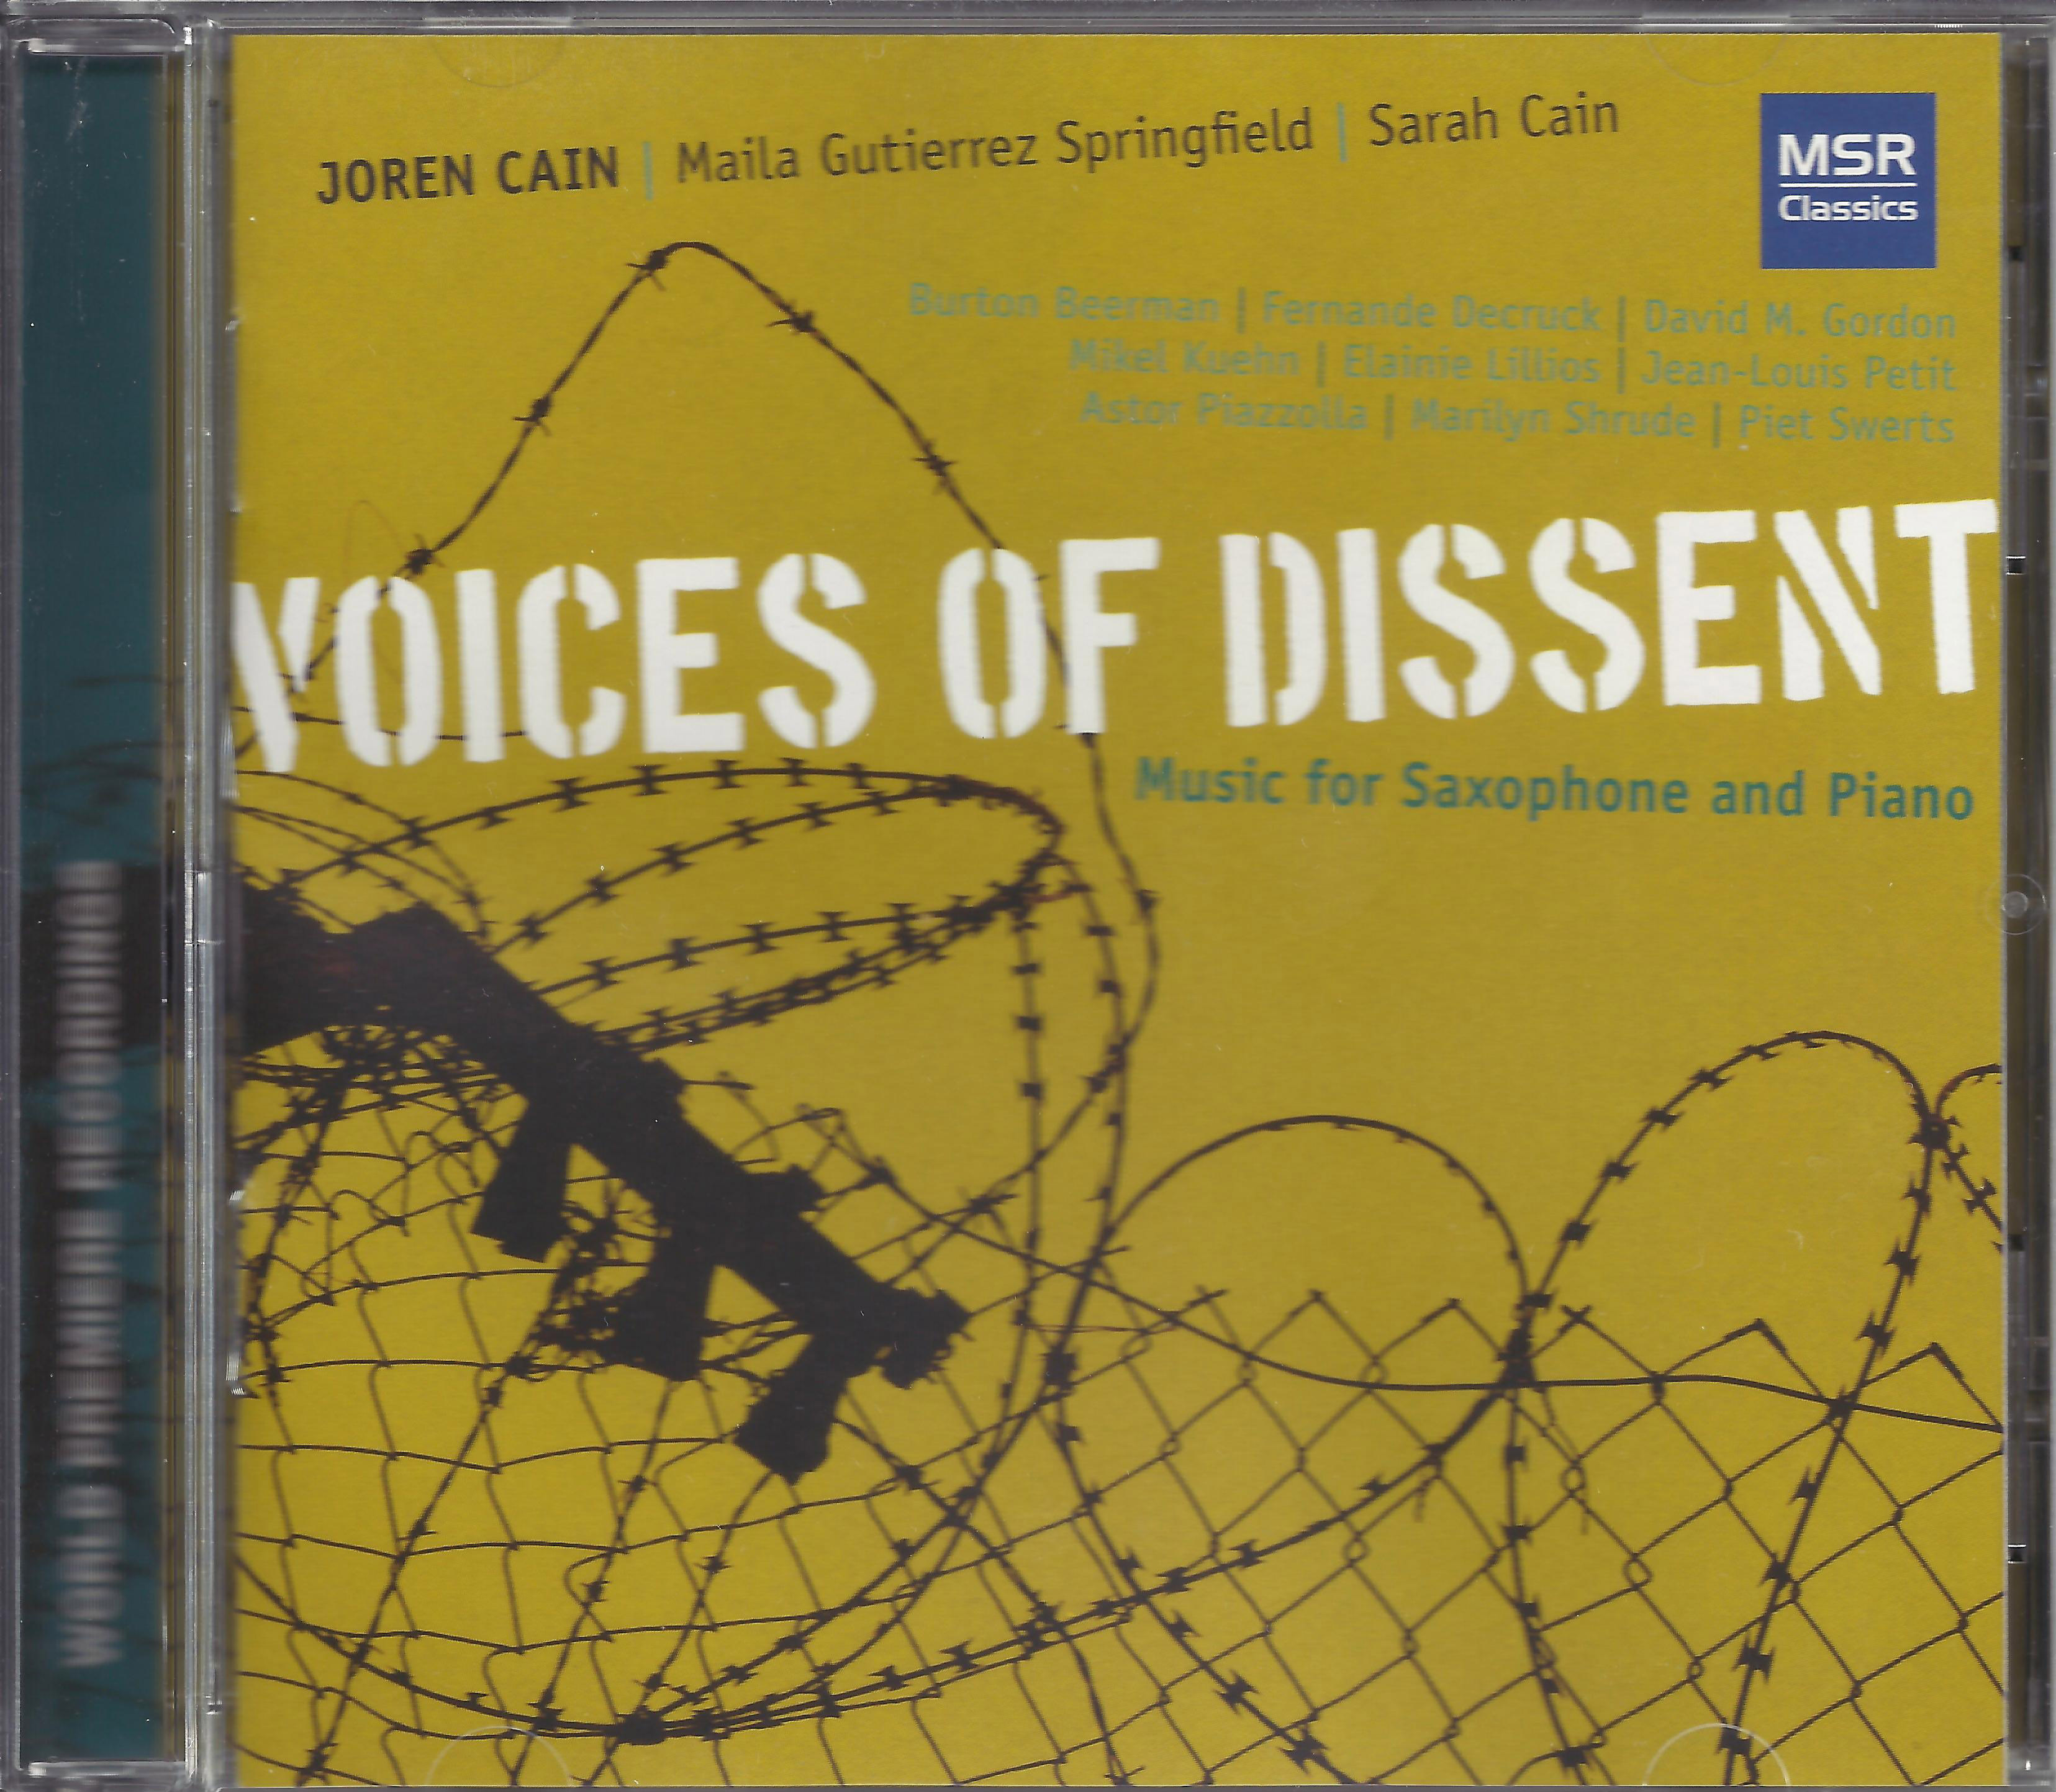 voices of descent cd cover.jpg